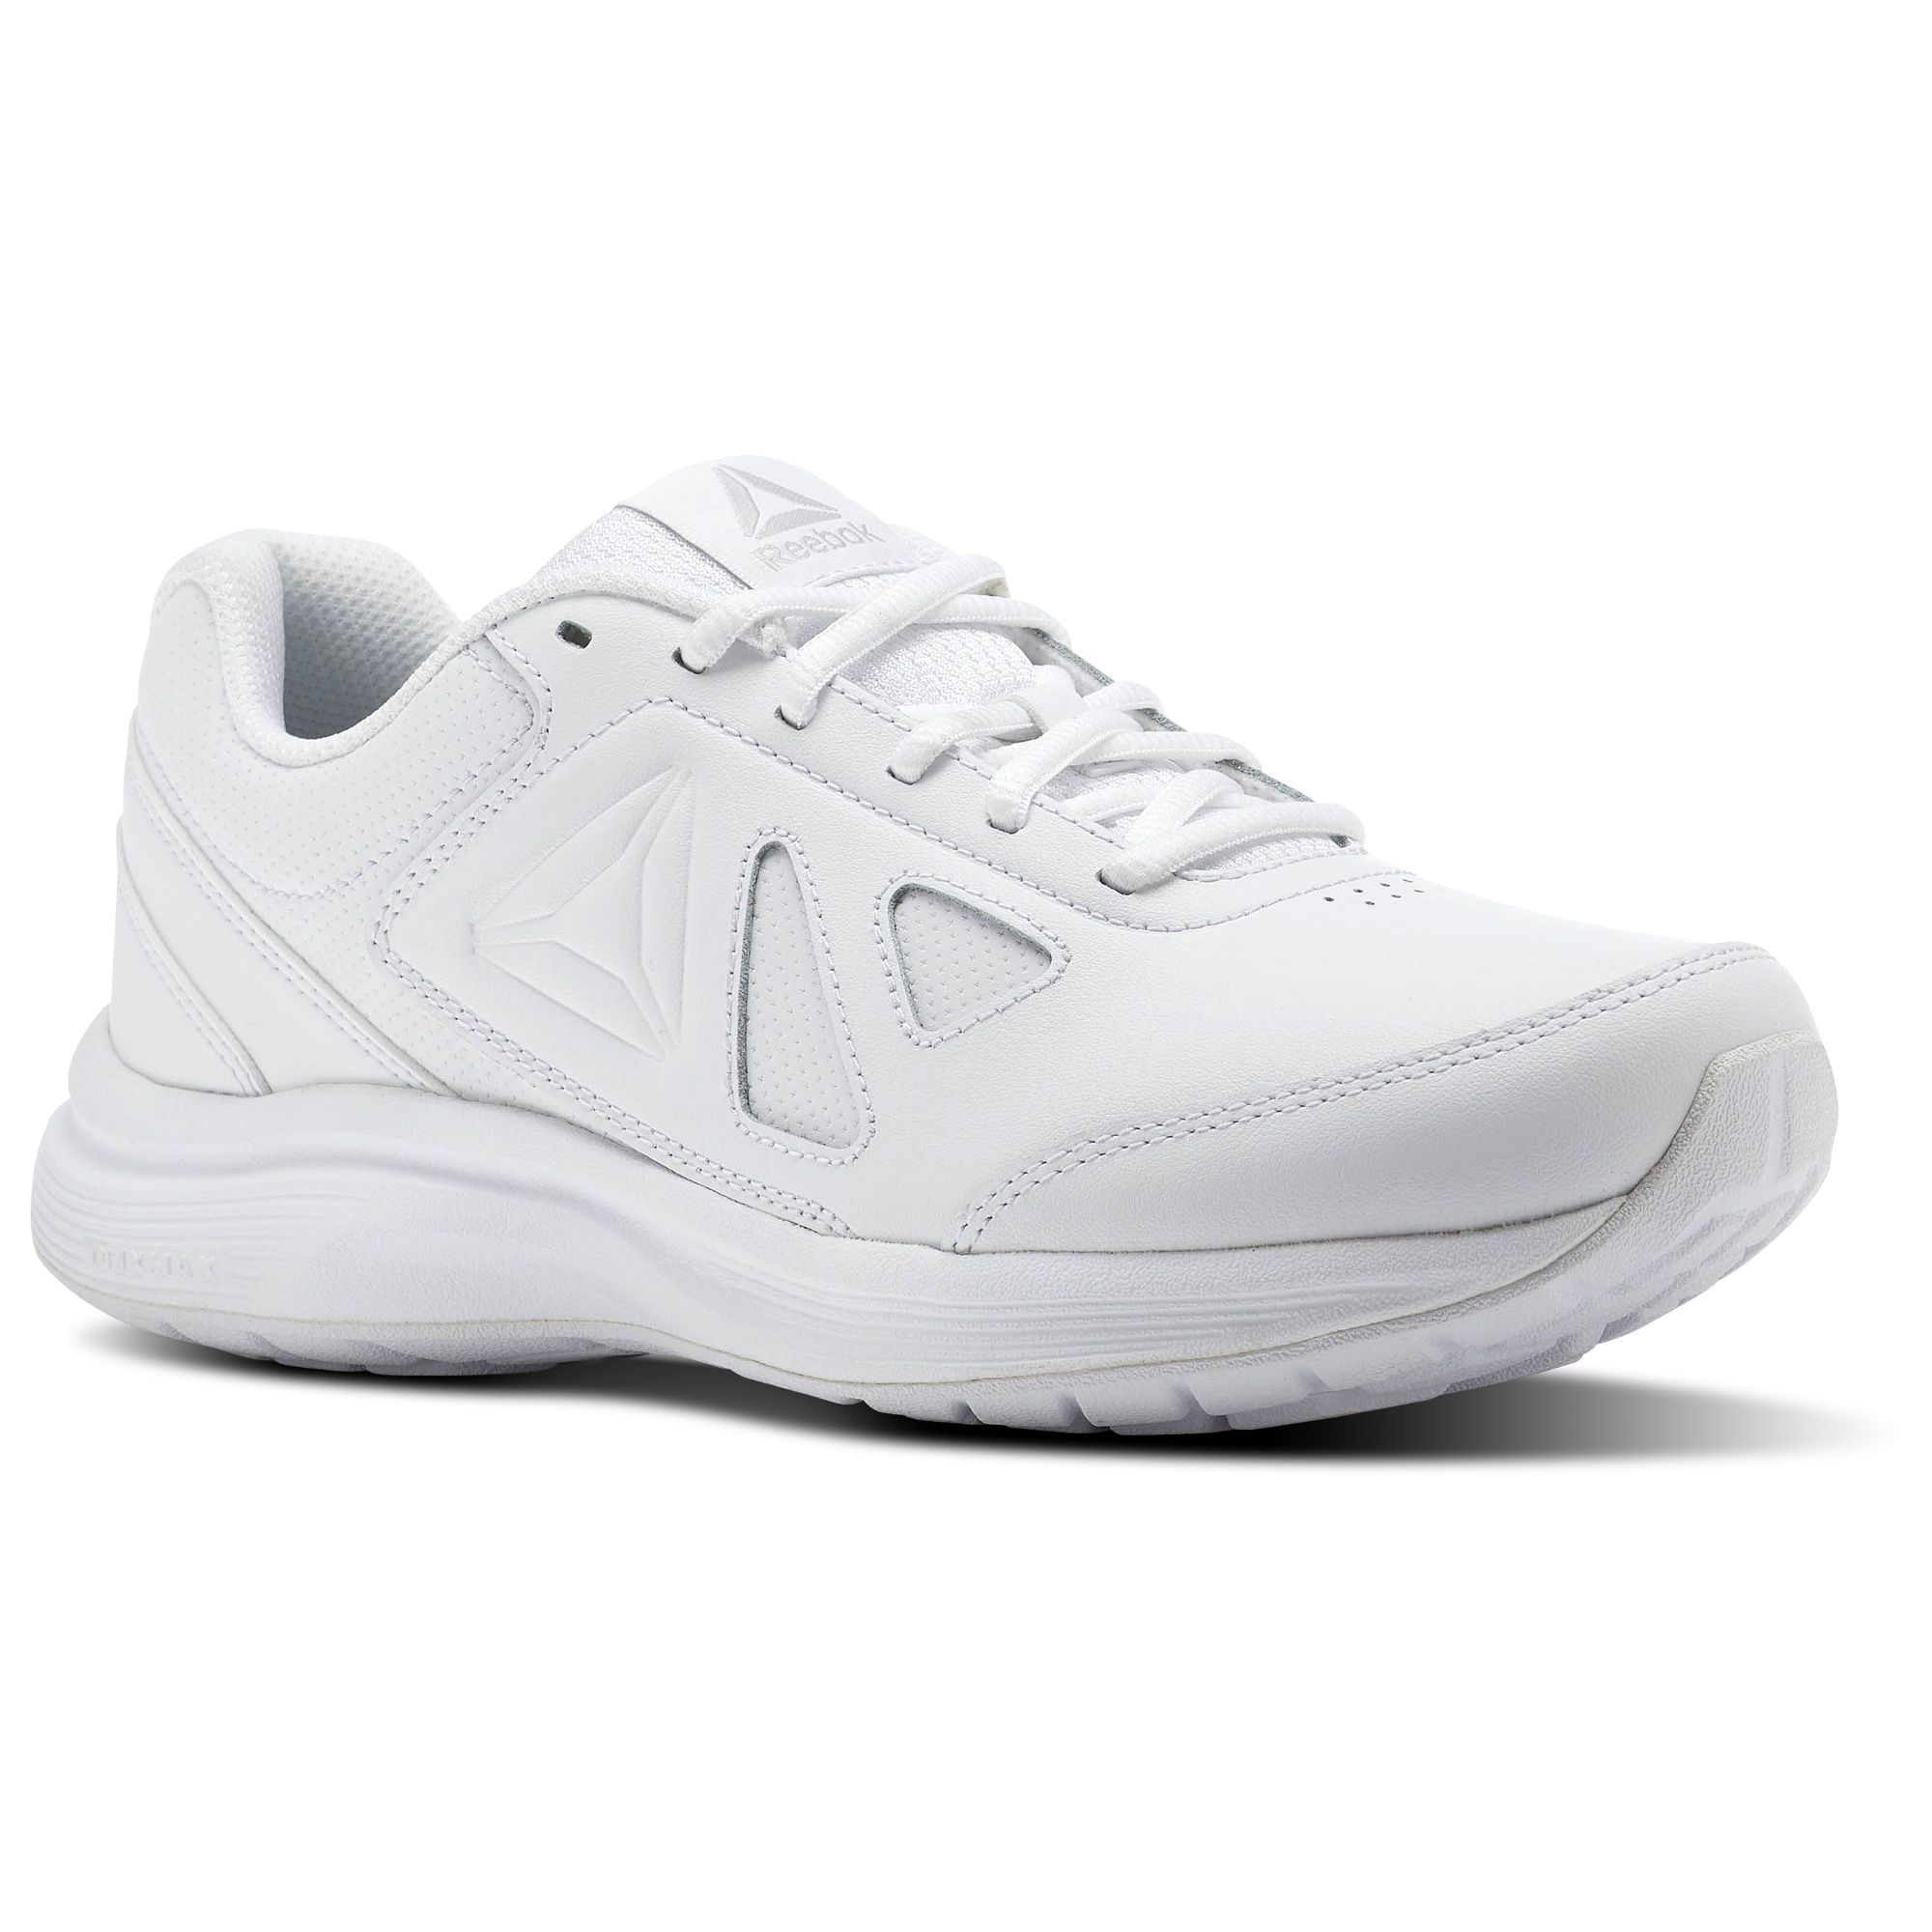 785ac6aaa1 Reebok Shoes Women's Walk Ultra 6 DMX MAX D in White/Steel Size 7 ...